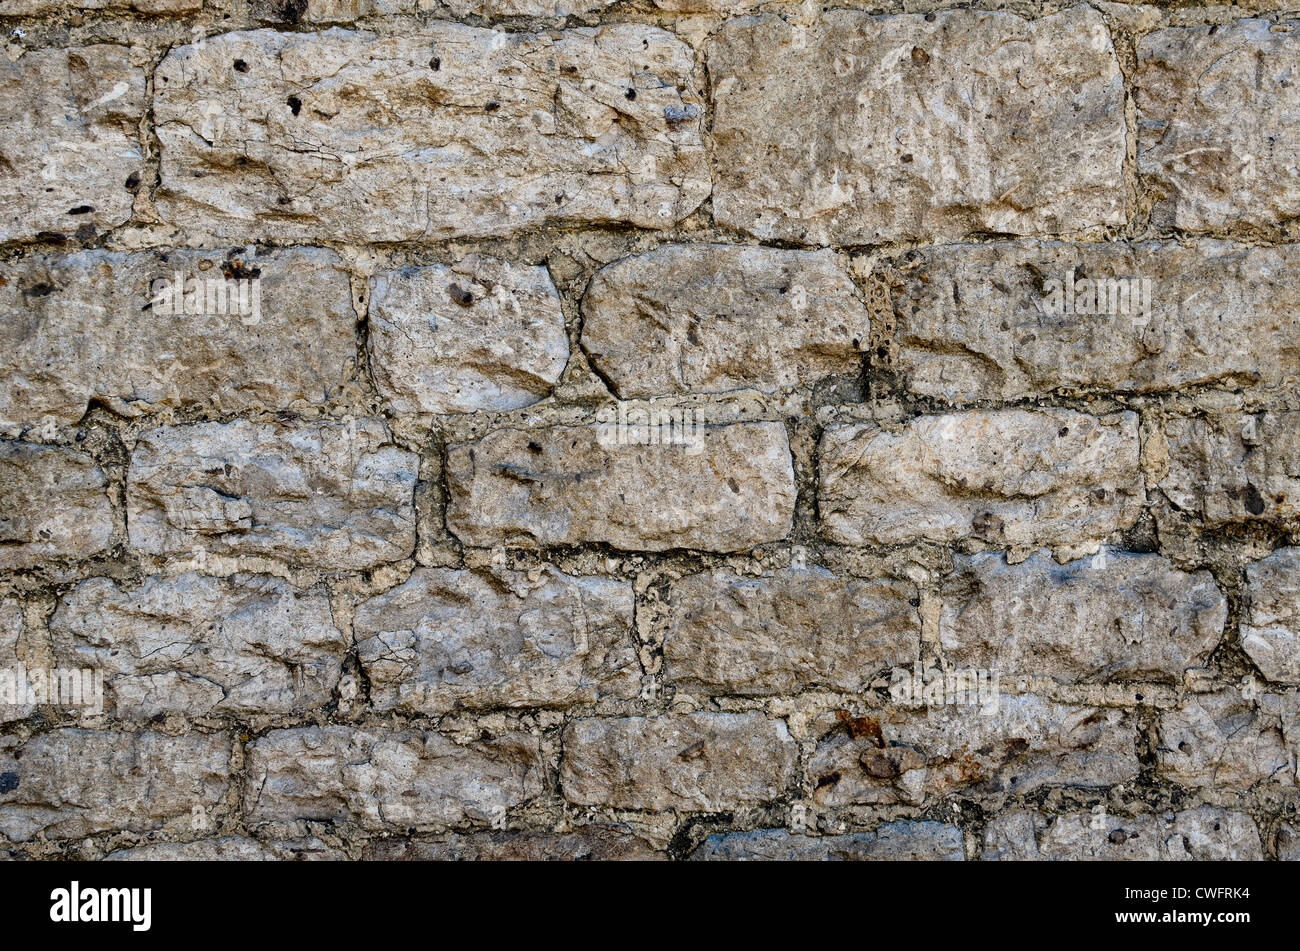 lime stone wall stockfotos lime stone wall bilder alamy. Black Bedroom Furniture Sets. Home Design Ideas